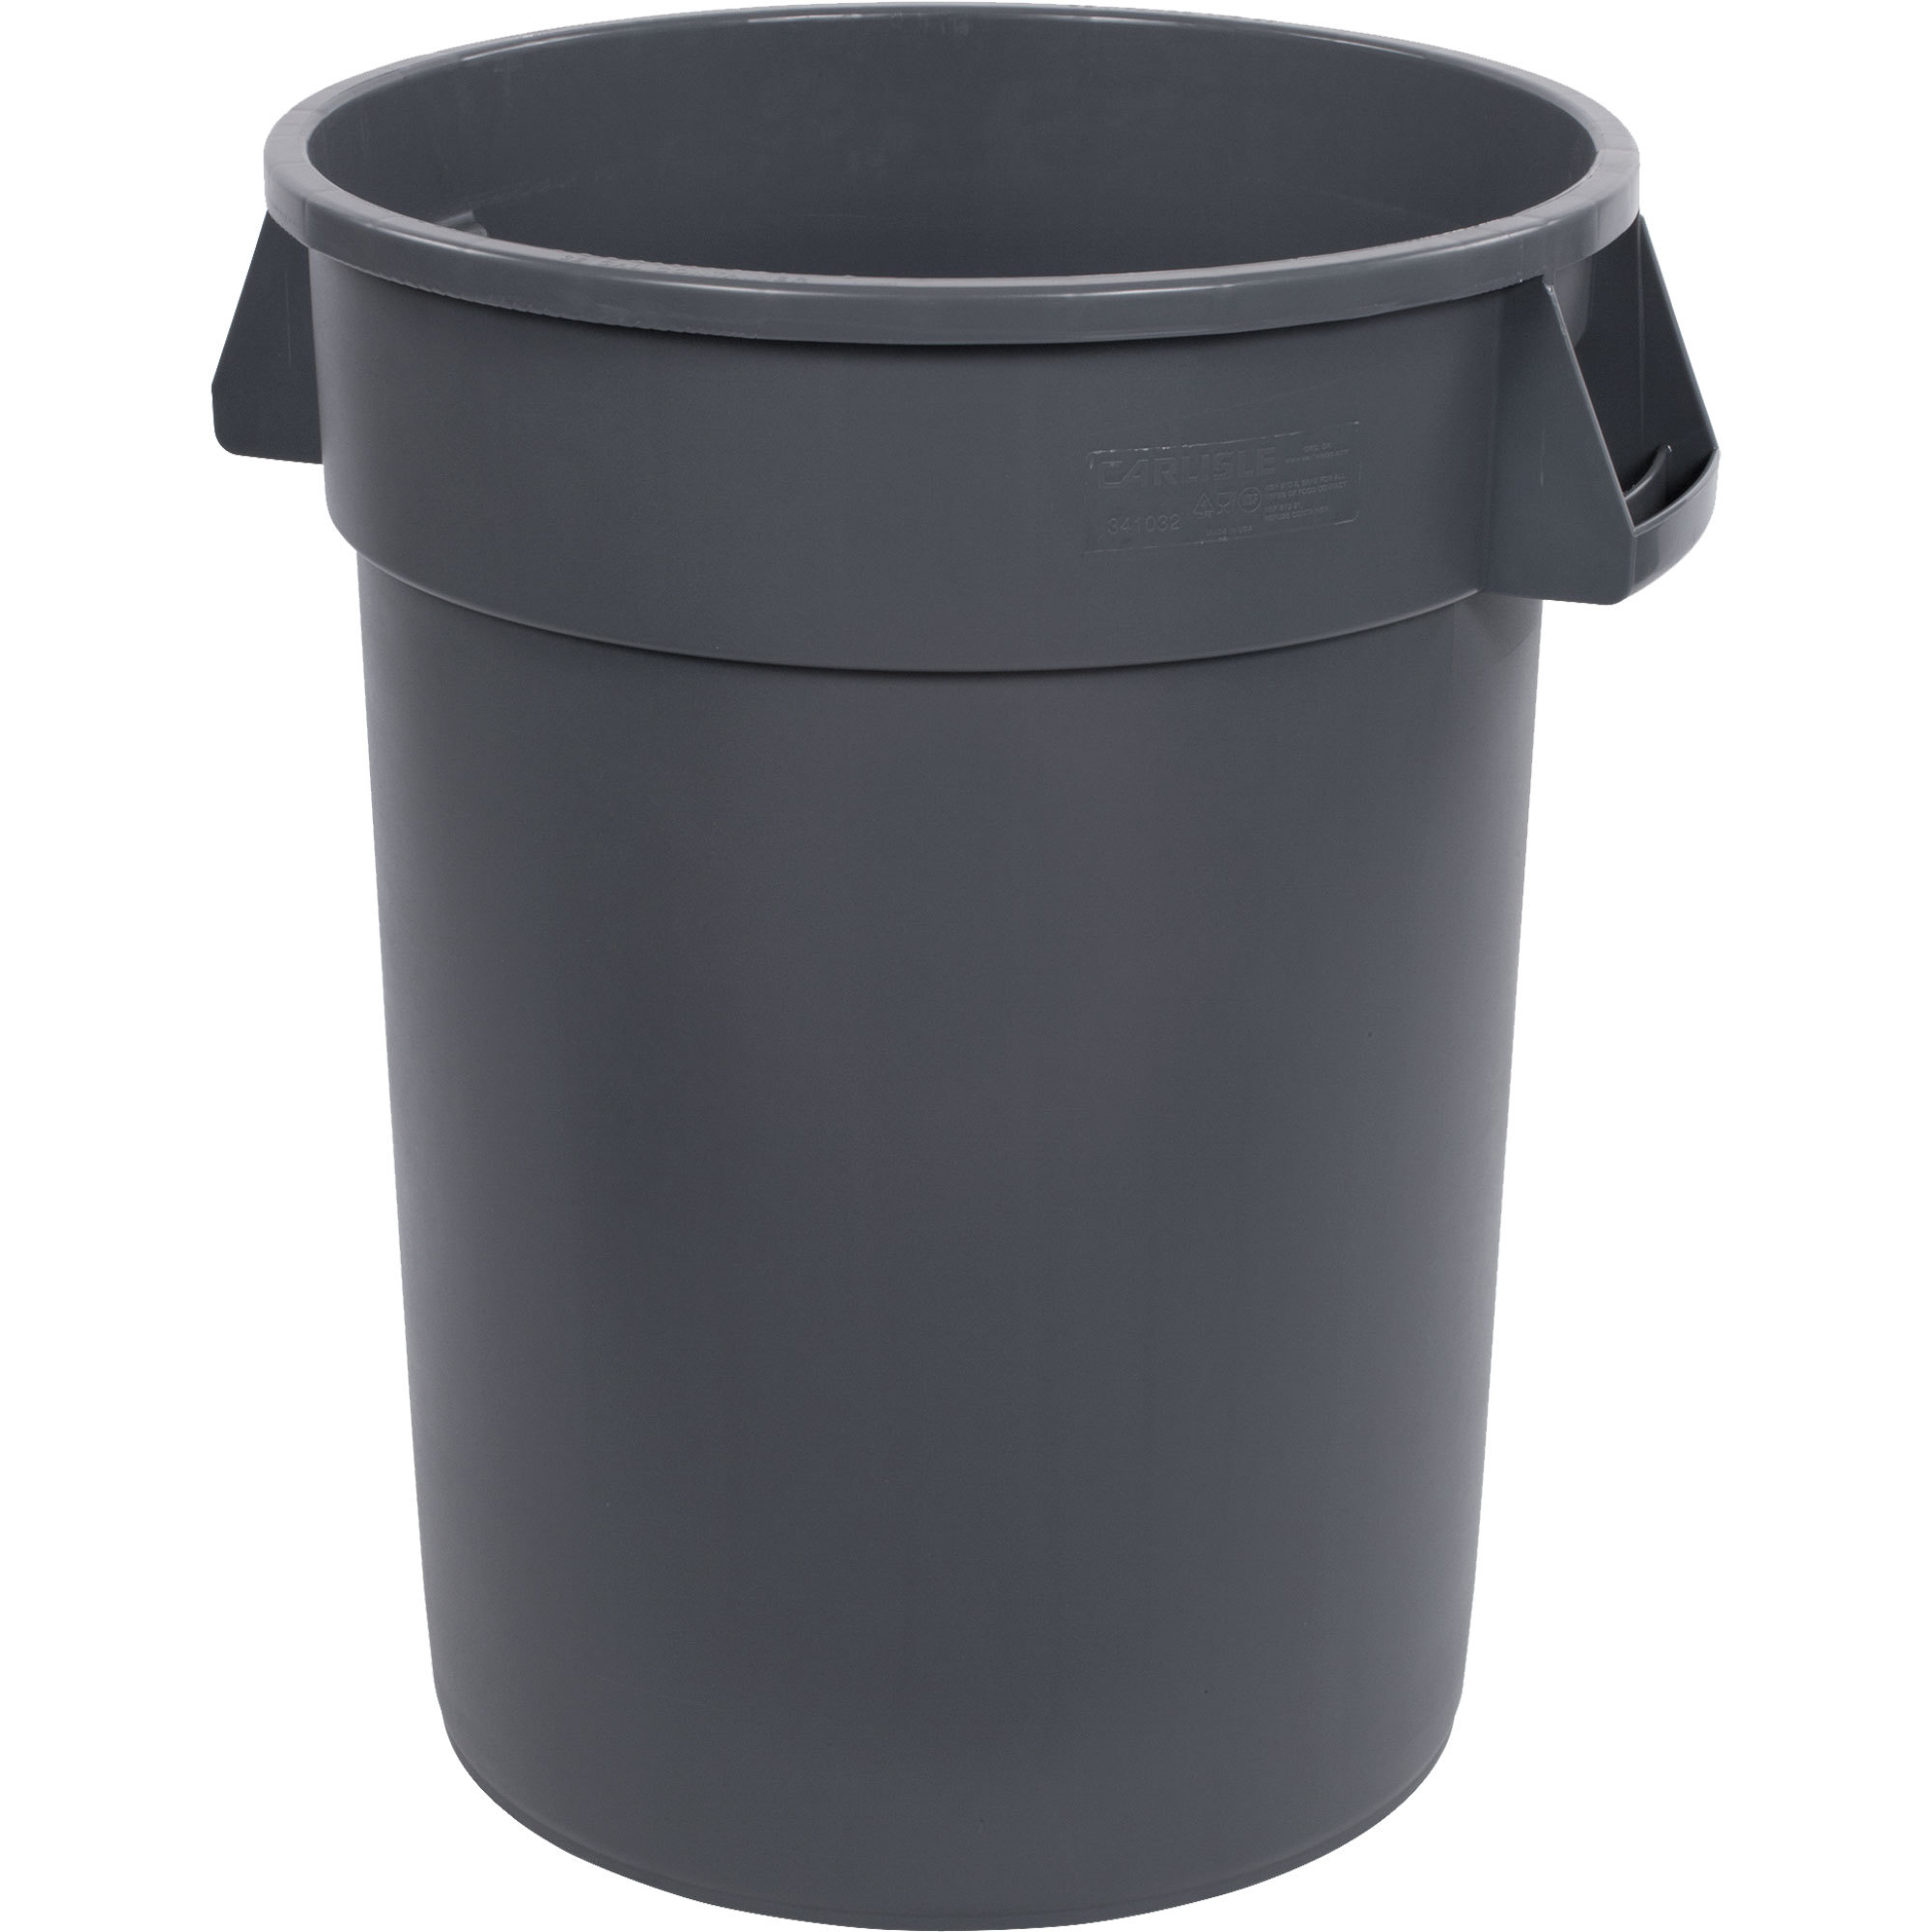 TRASH CAN 32 GALLON GRAY ROUND